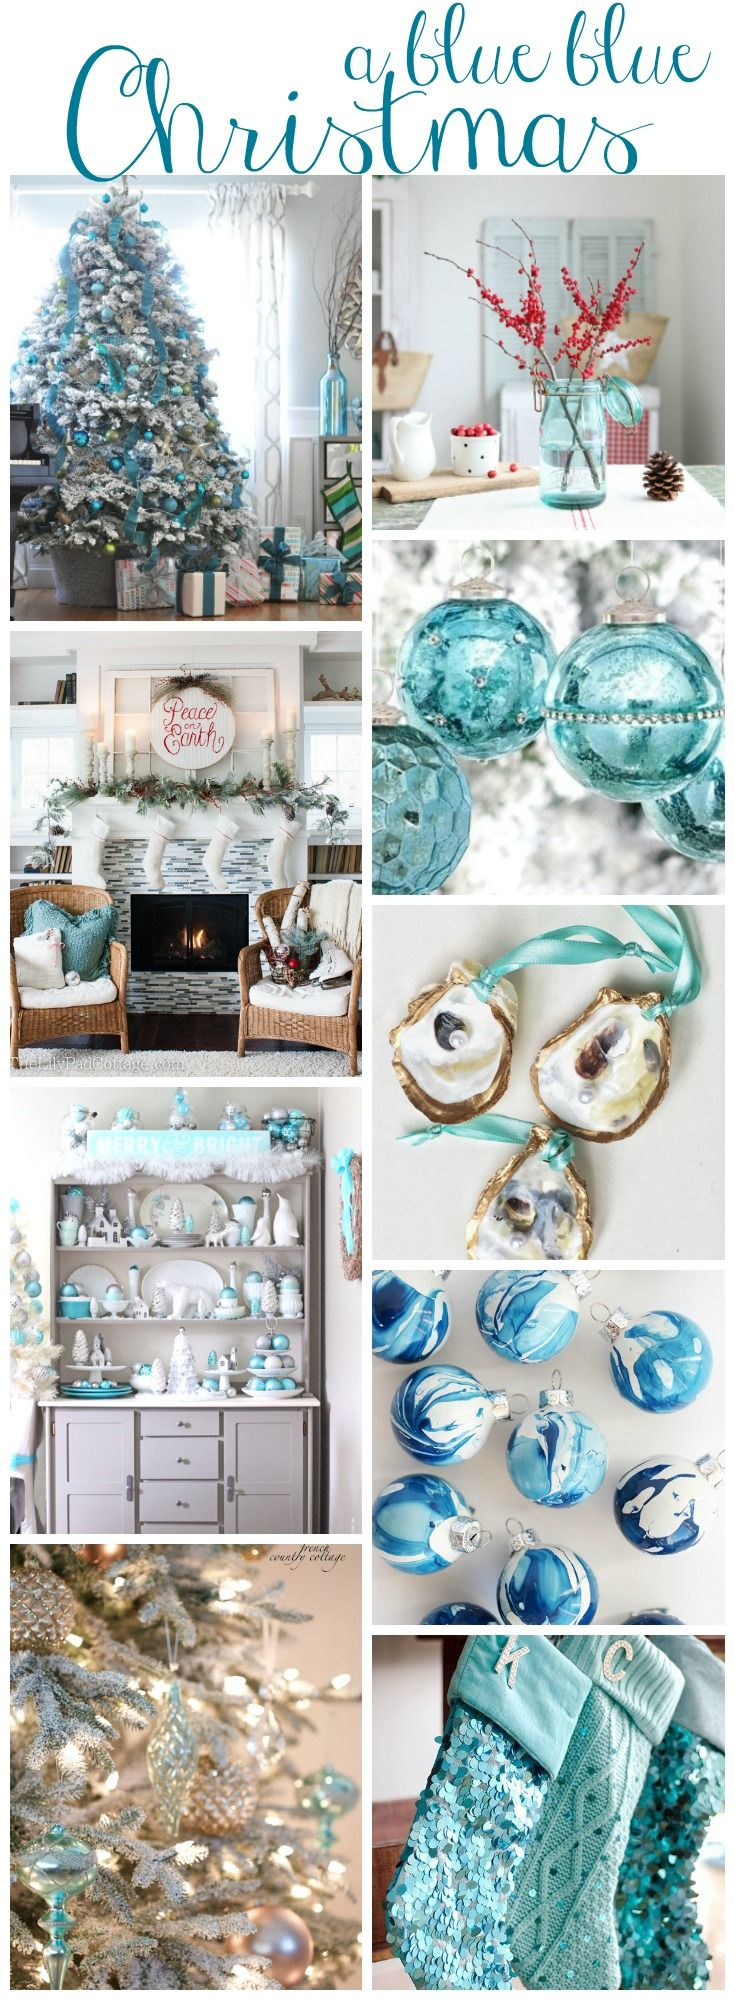 Blue christmas decorations party ideas blue christmas decorations - A Blue Blue Christmas Style Series Diy Christmas Decorationsfood